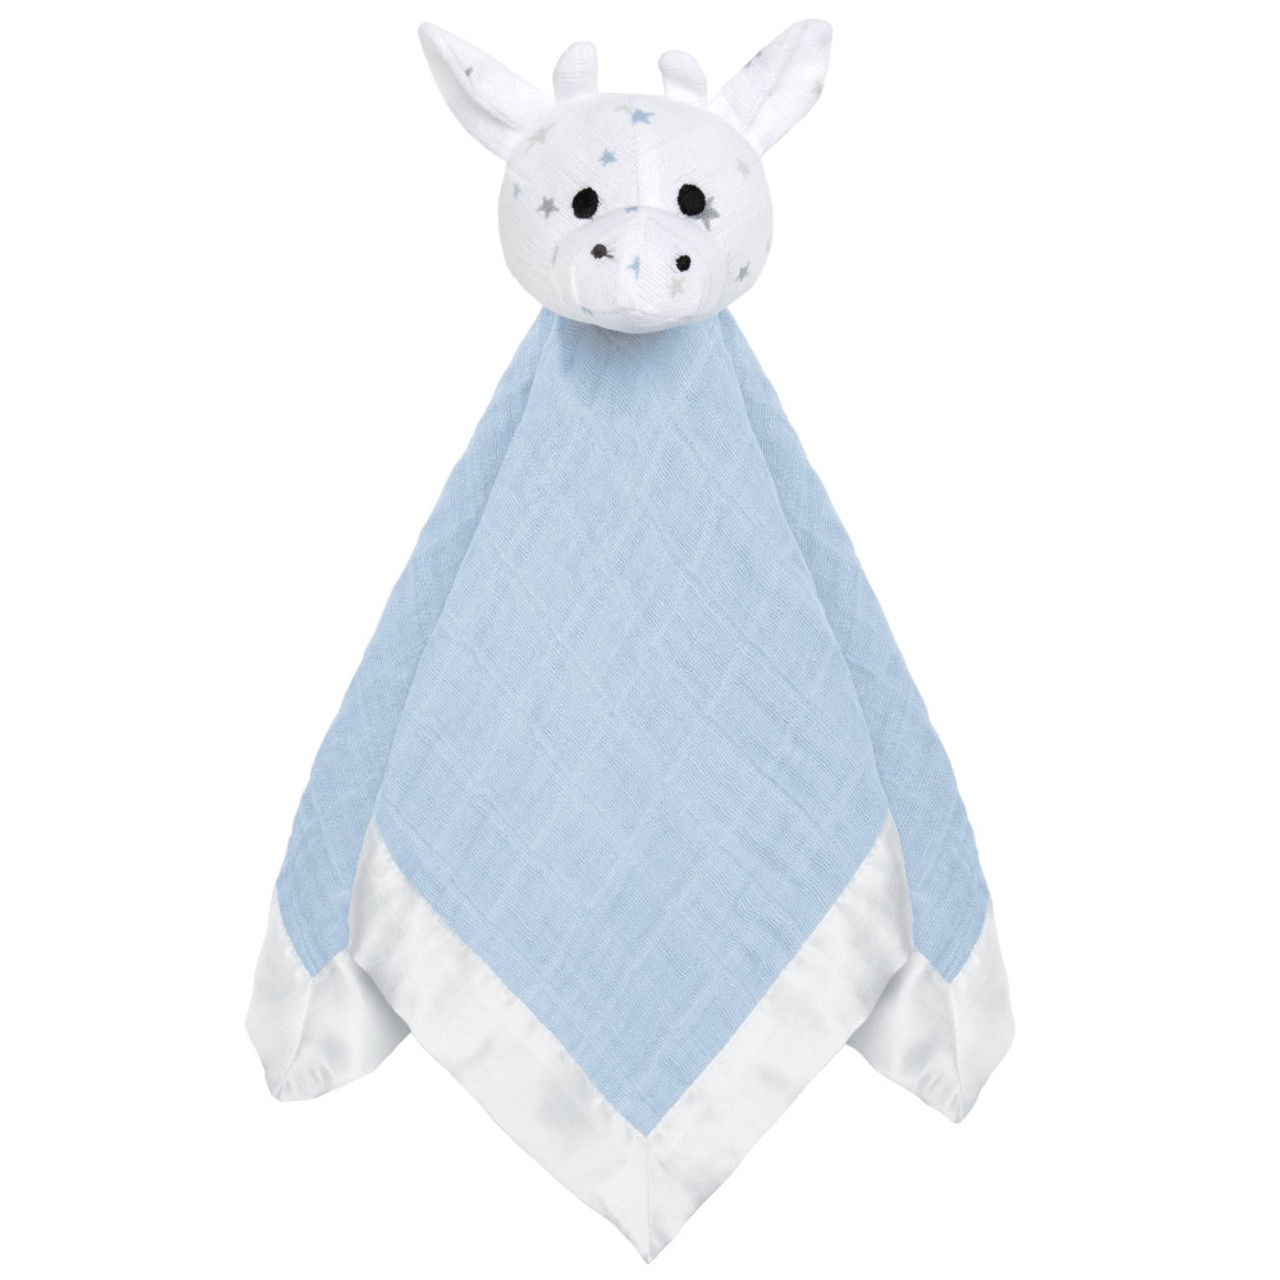 Aden + Anais Muslin Security Blanket Musy Mate Lovey - Classic Sky Reverie